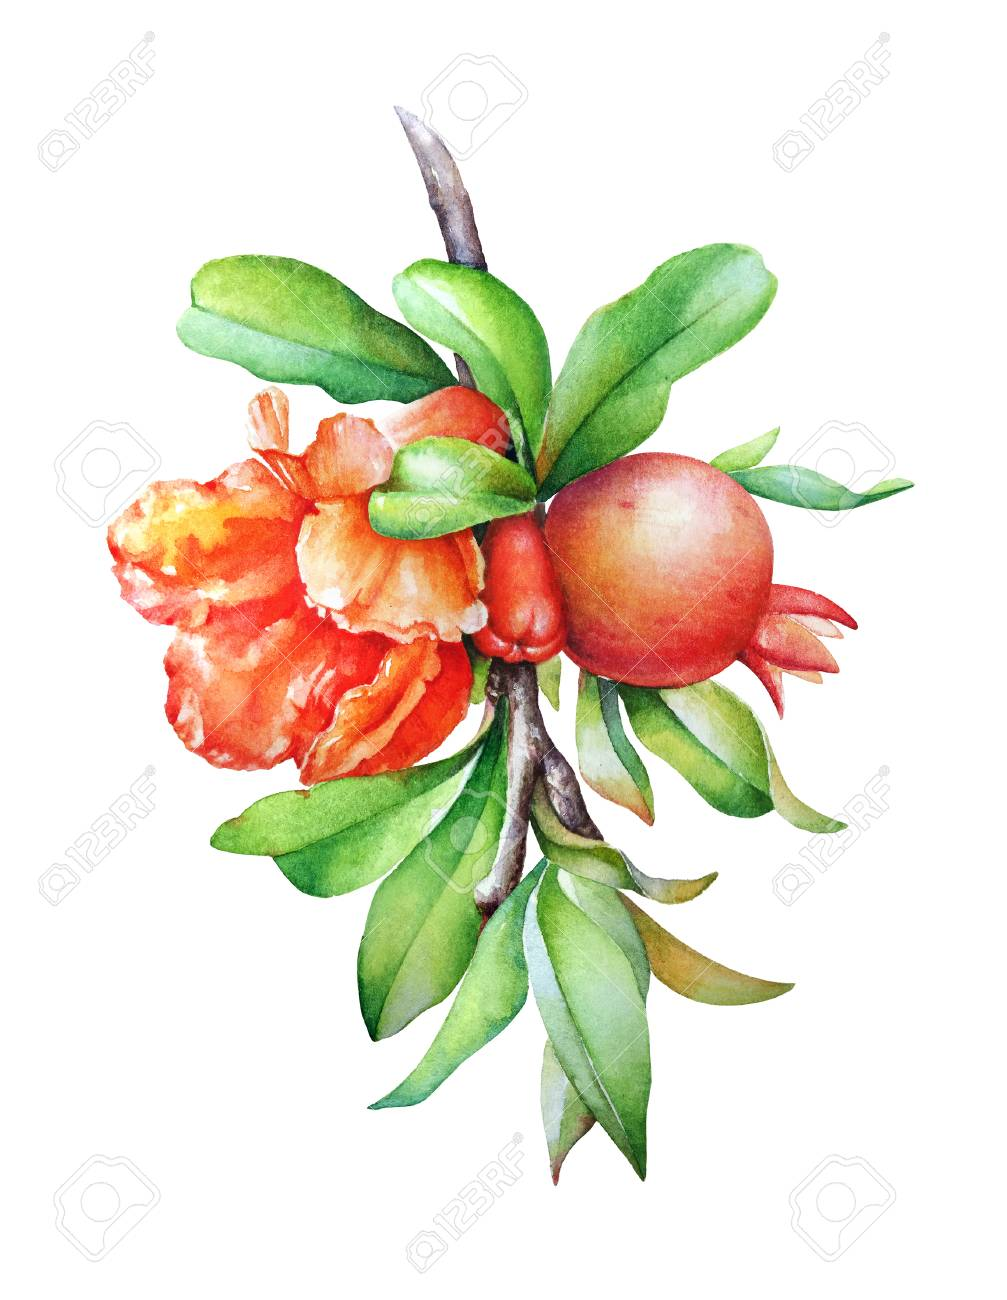 Watercolor Hand Drawn Illustration Of The Pomegranate Tree Branch Stock Photo Picture And Royalty Free Image Image 109423097